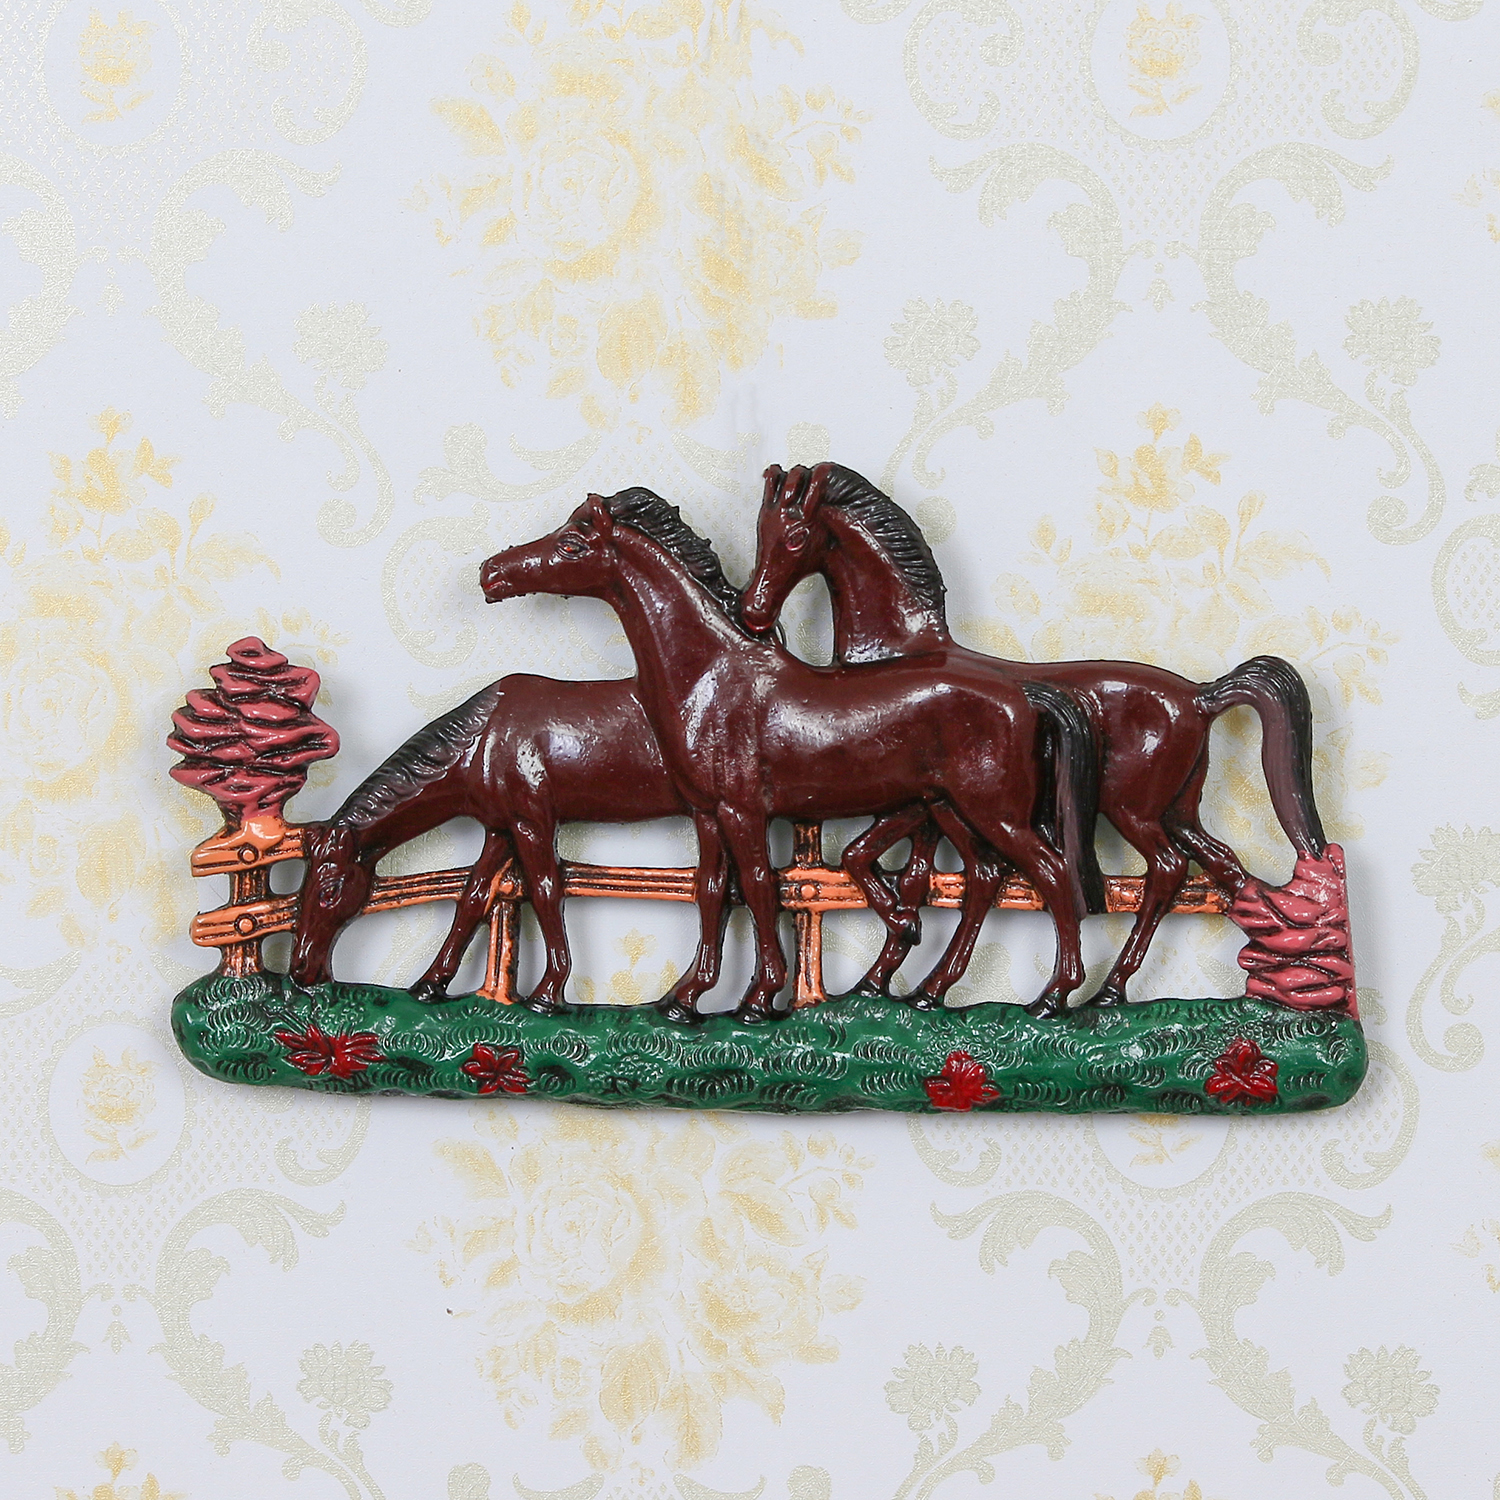 Set of 3 White Horses Colorful Decorative Wall Hanging Indian Home Decor